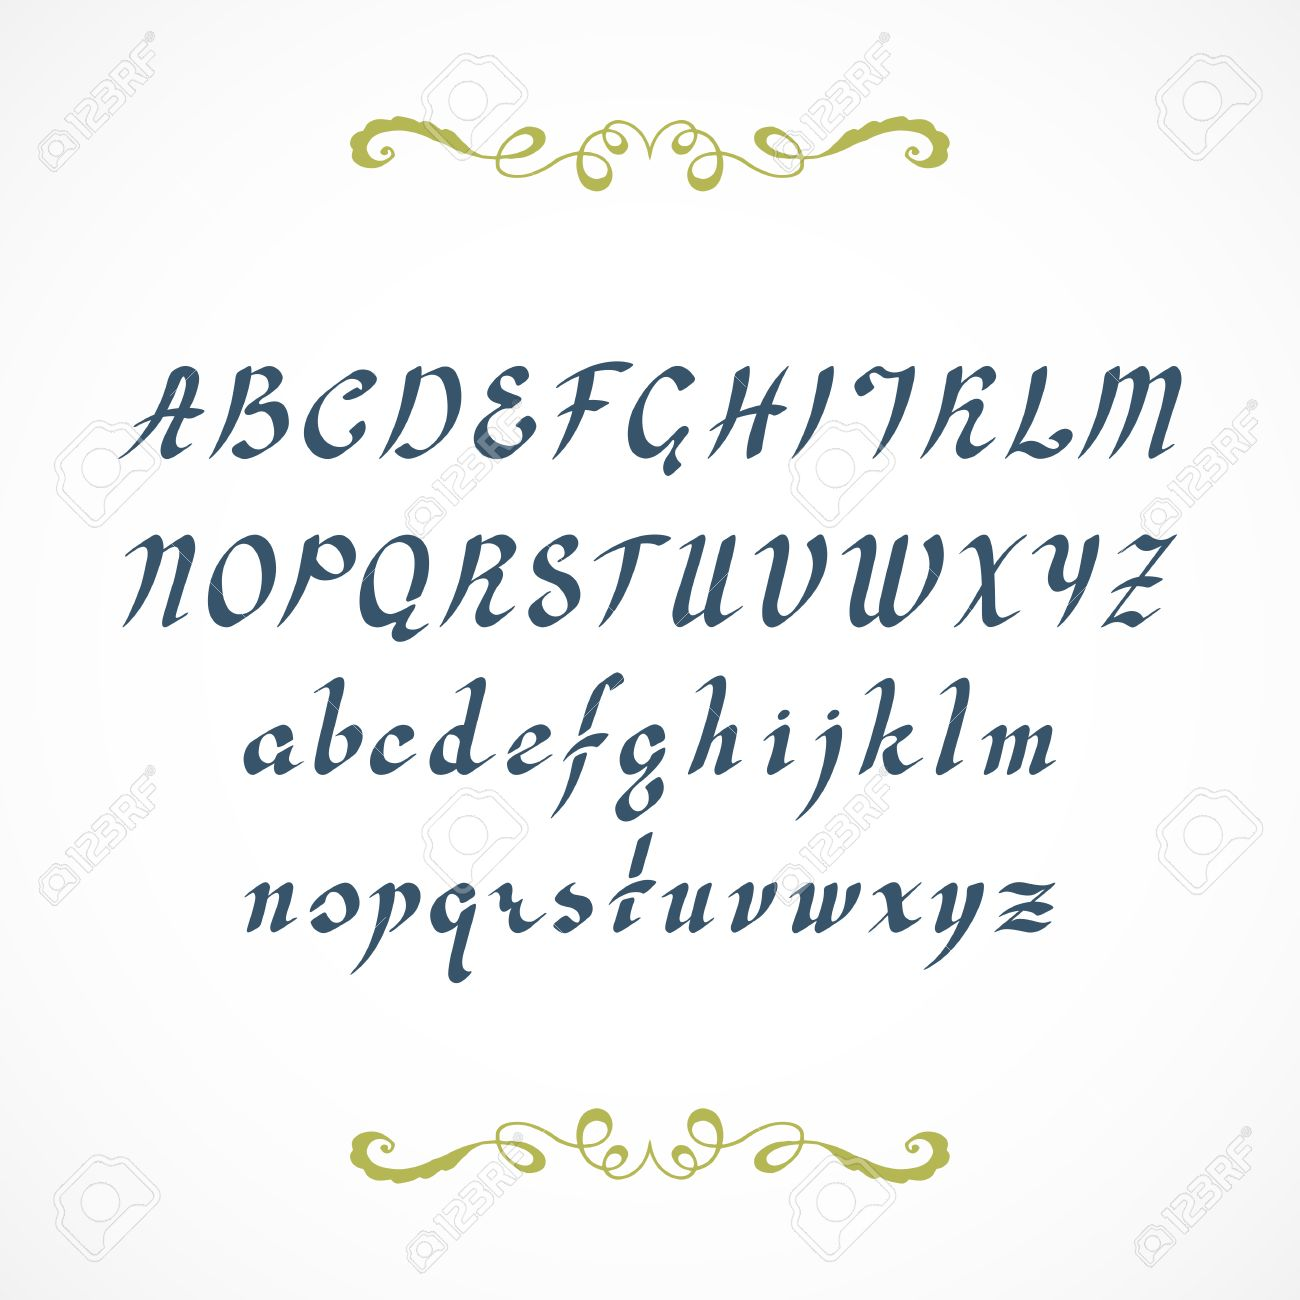 Elegant Cursive Font Not Auto Traced Based On Hand Written By Ink Pen Alphabet